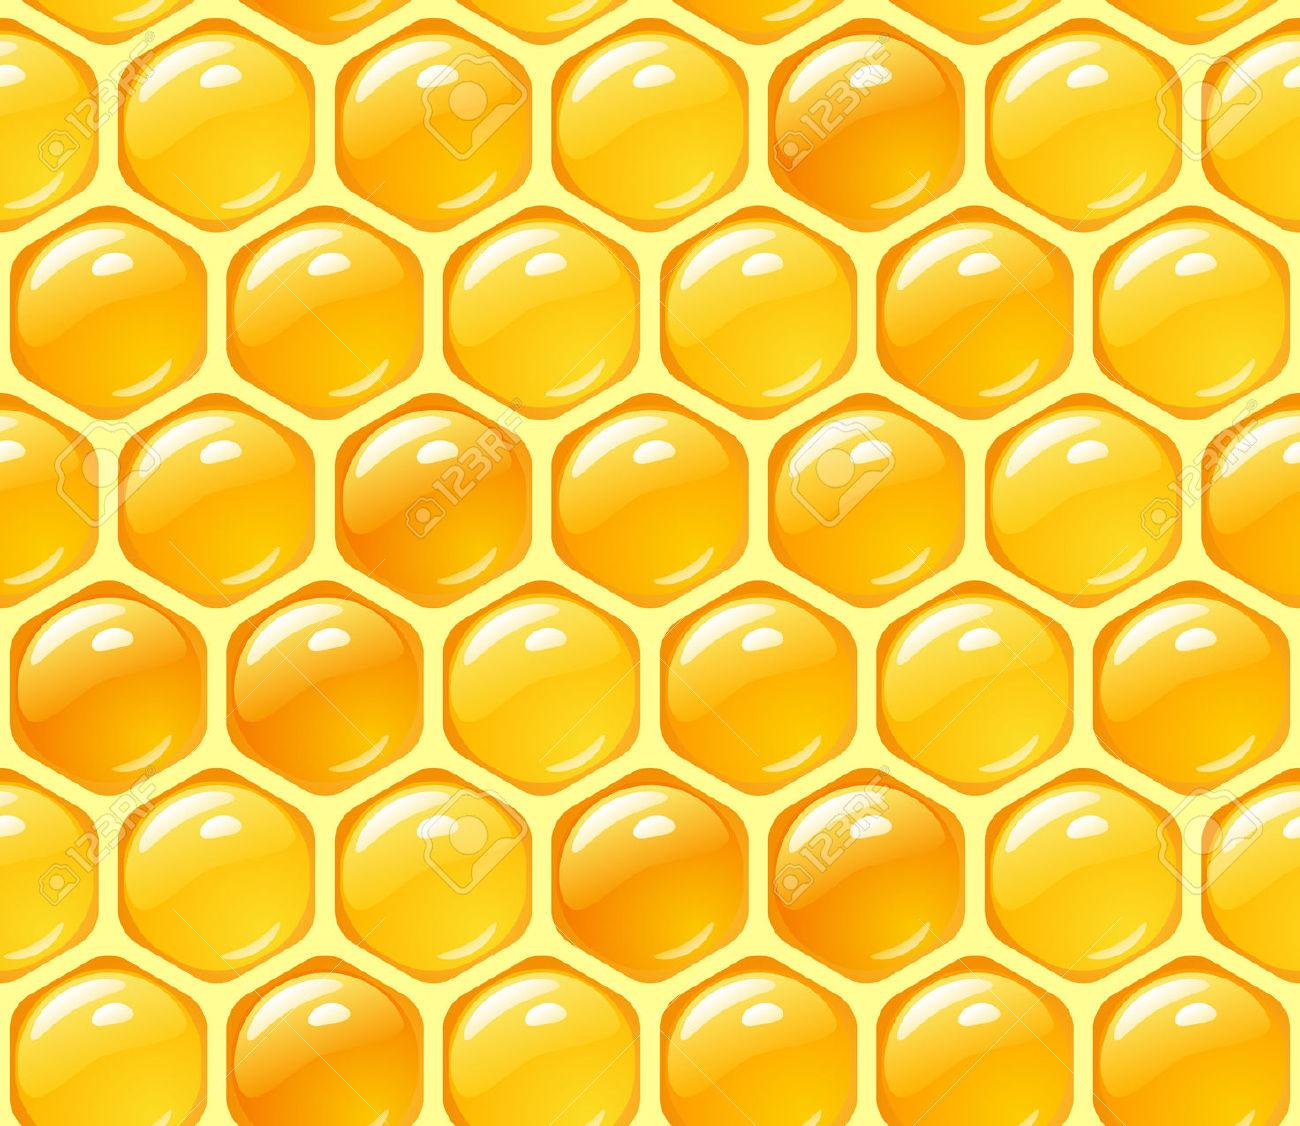 Honeycomb clipart honeycomb background. Free cliparts download clip